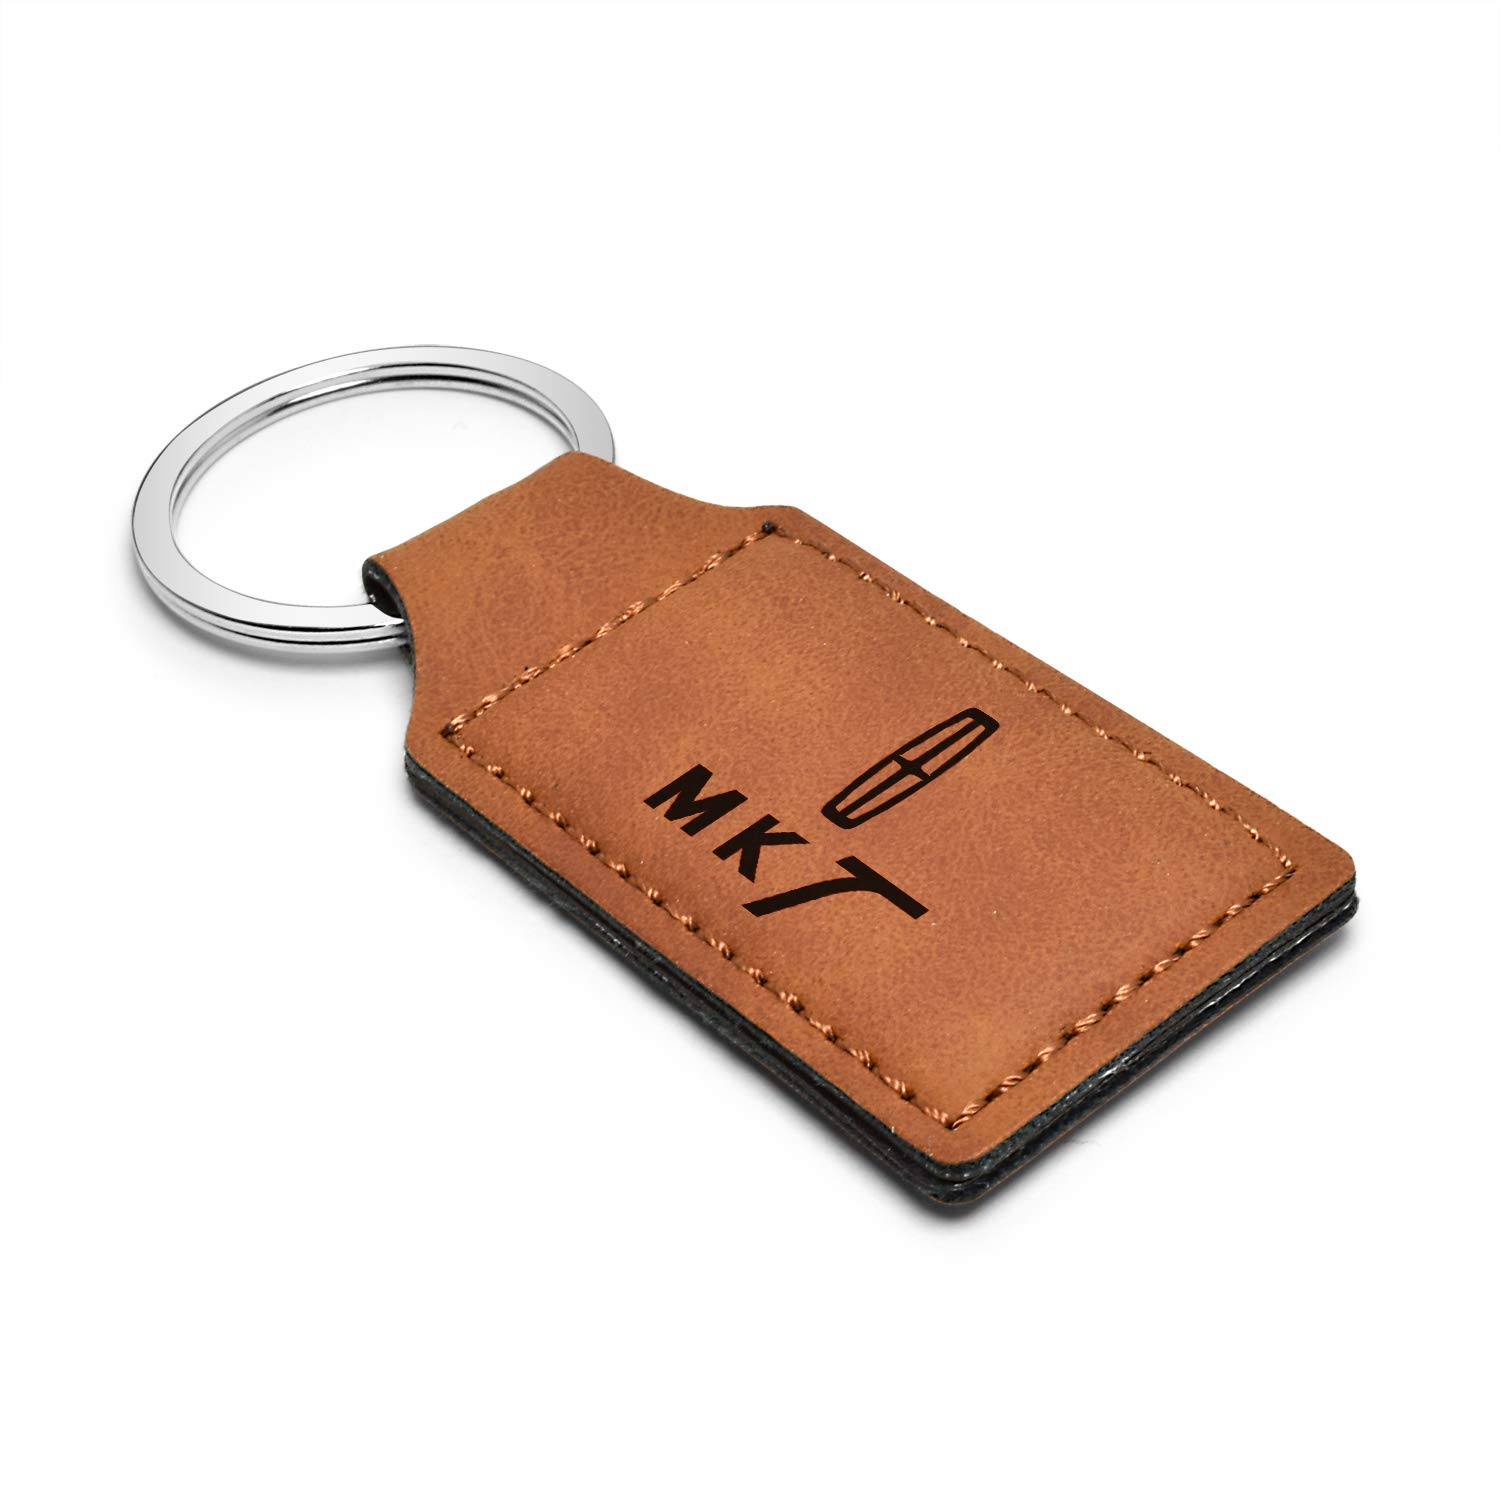 MKT iPick Image Lincoln Rectangular Brown Leather Key Chain